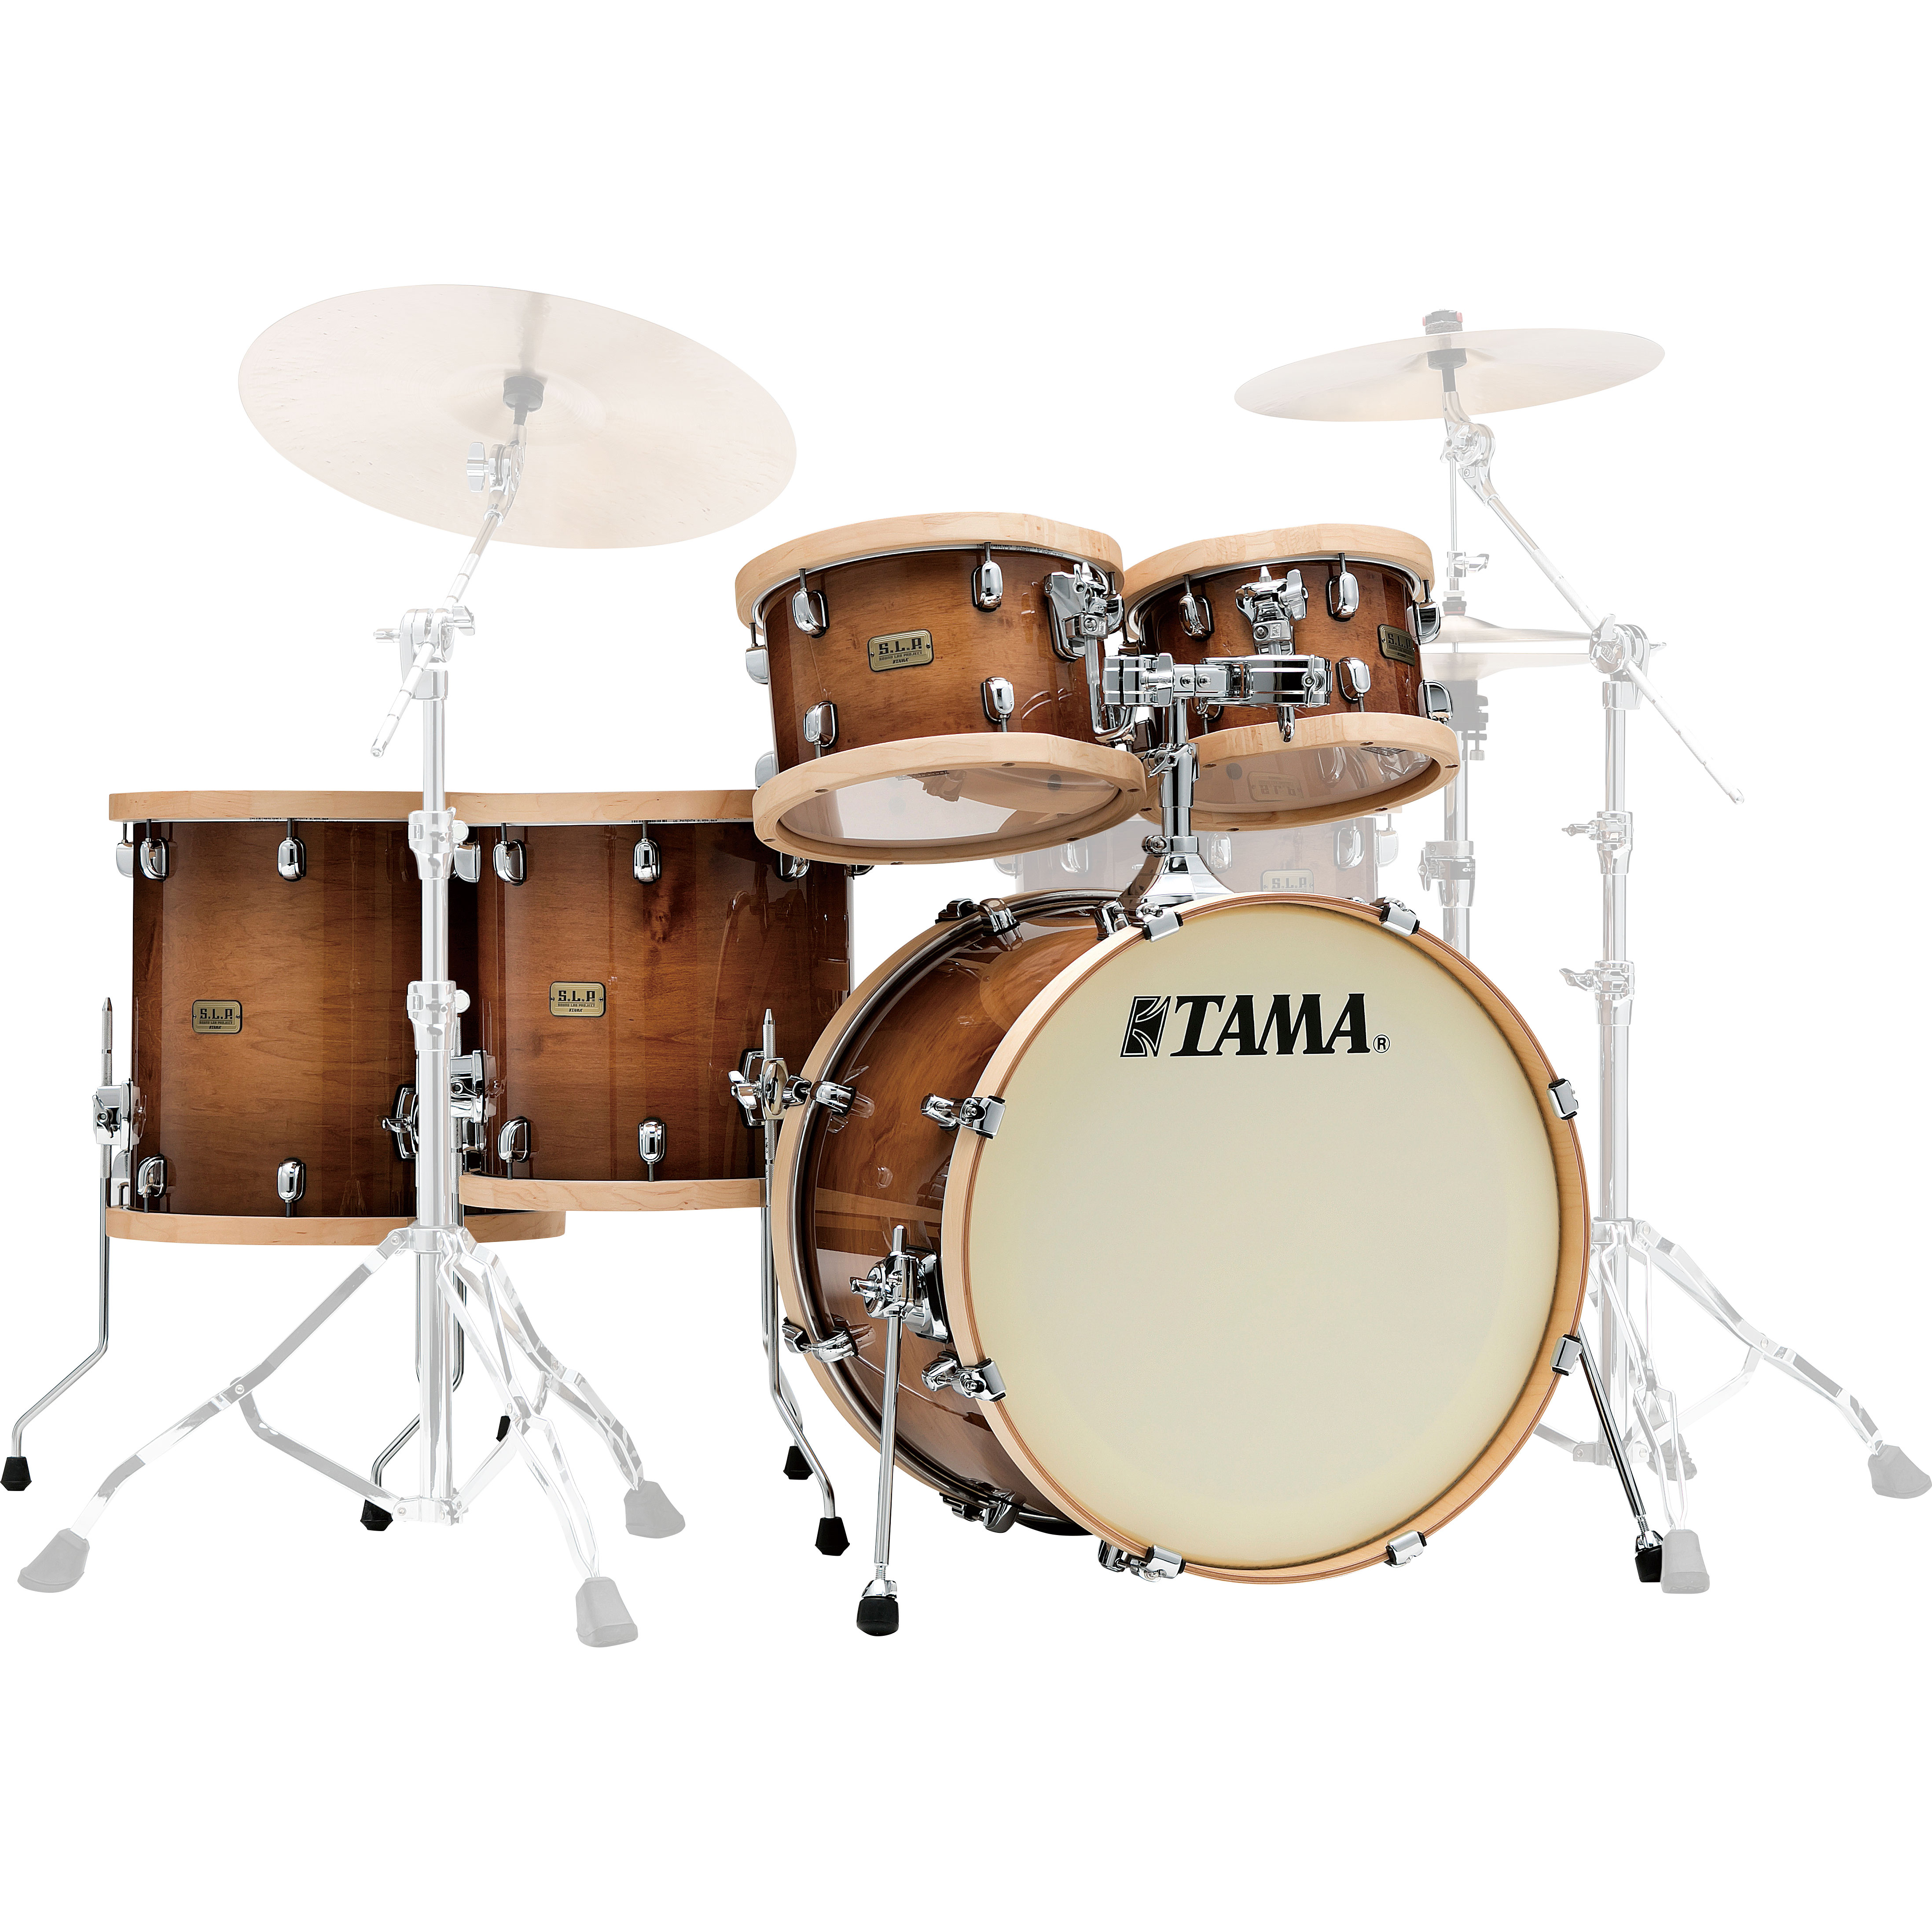 "Tama S.L.P. Studio Maple 5-Piece Drum Set Shell Pack (22"" Bass, 10/12/14/16"" Toms) in Gloss Sienna"